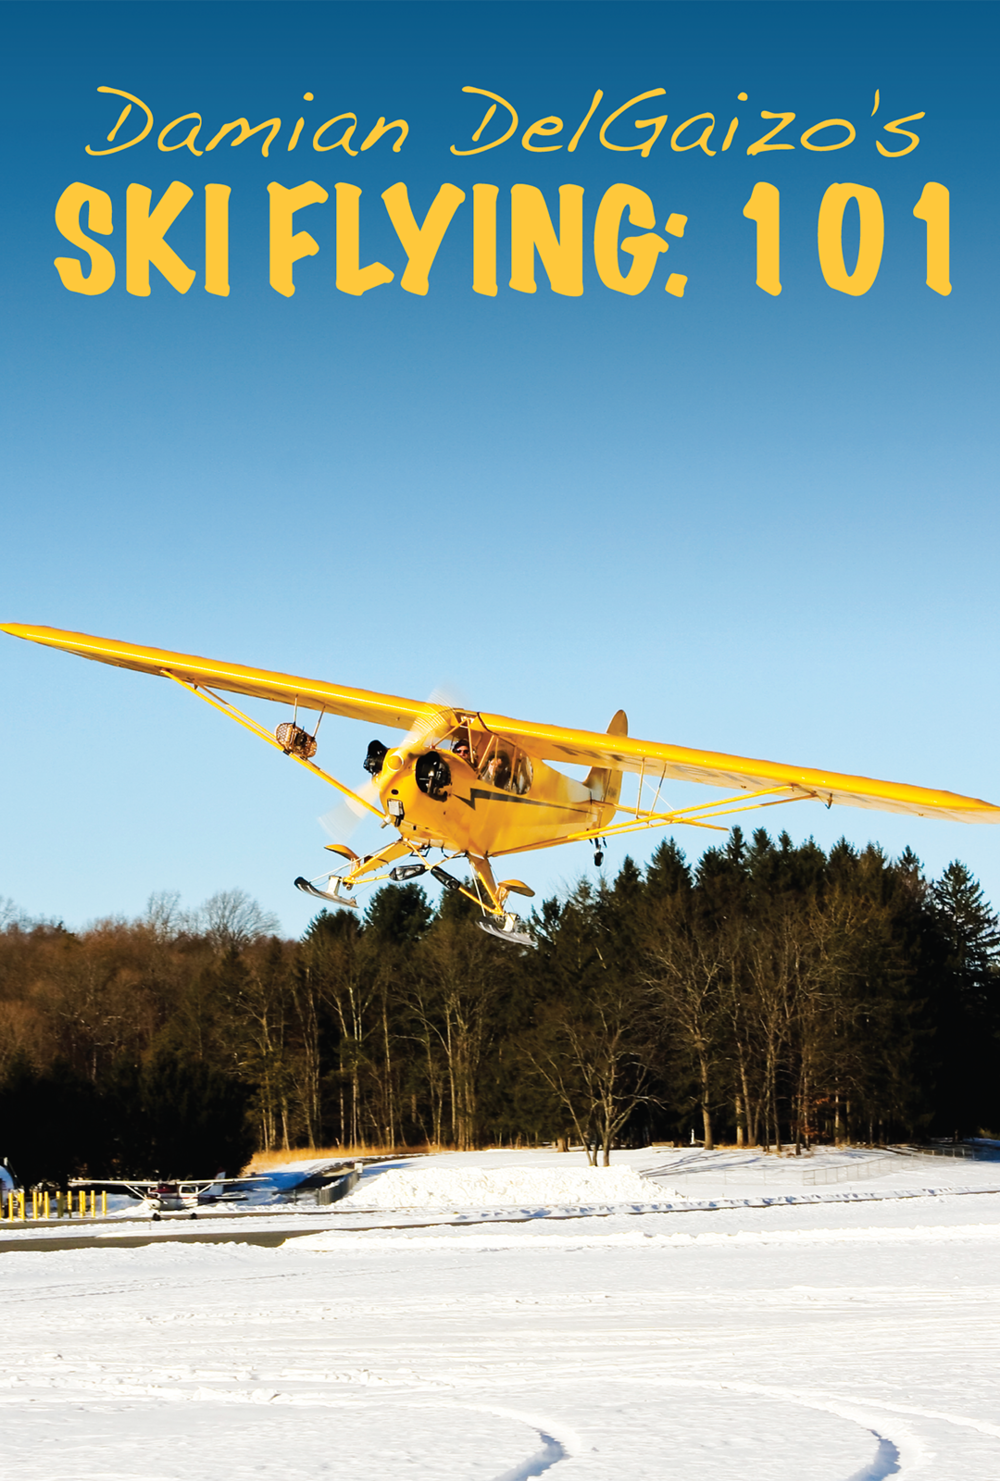 Ski Flying: 101 - Damian DelGaizo's Ski Flying: 101 takes the tailwheel lover for a subzero spin.  Winter operations are a whole lot more fun in a classic J3 on skis.  Ground and in-flight lessons help you learn the techniques necessary to become proficient in ski flying.  Damian also shares several of his ski flying tips and tricks to help keep your winter flying fun and safe.on skis.  Ground and in-flight lessons help you learn the techniques necessary to become proficient in ski flying.  Damian also shares several of his ski flying tips and tricks to help keep your winter flying fun and safe.